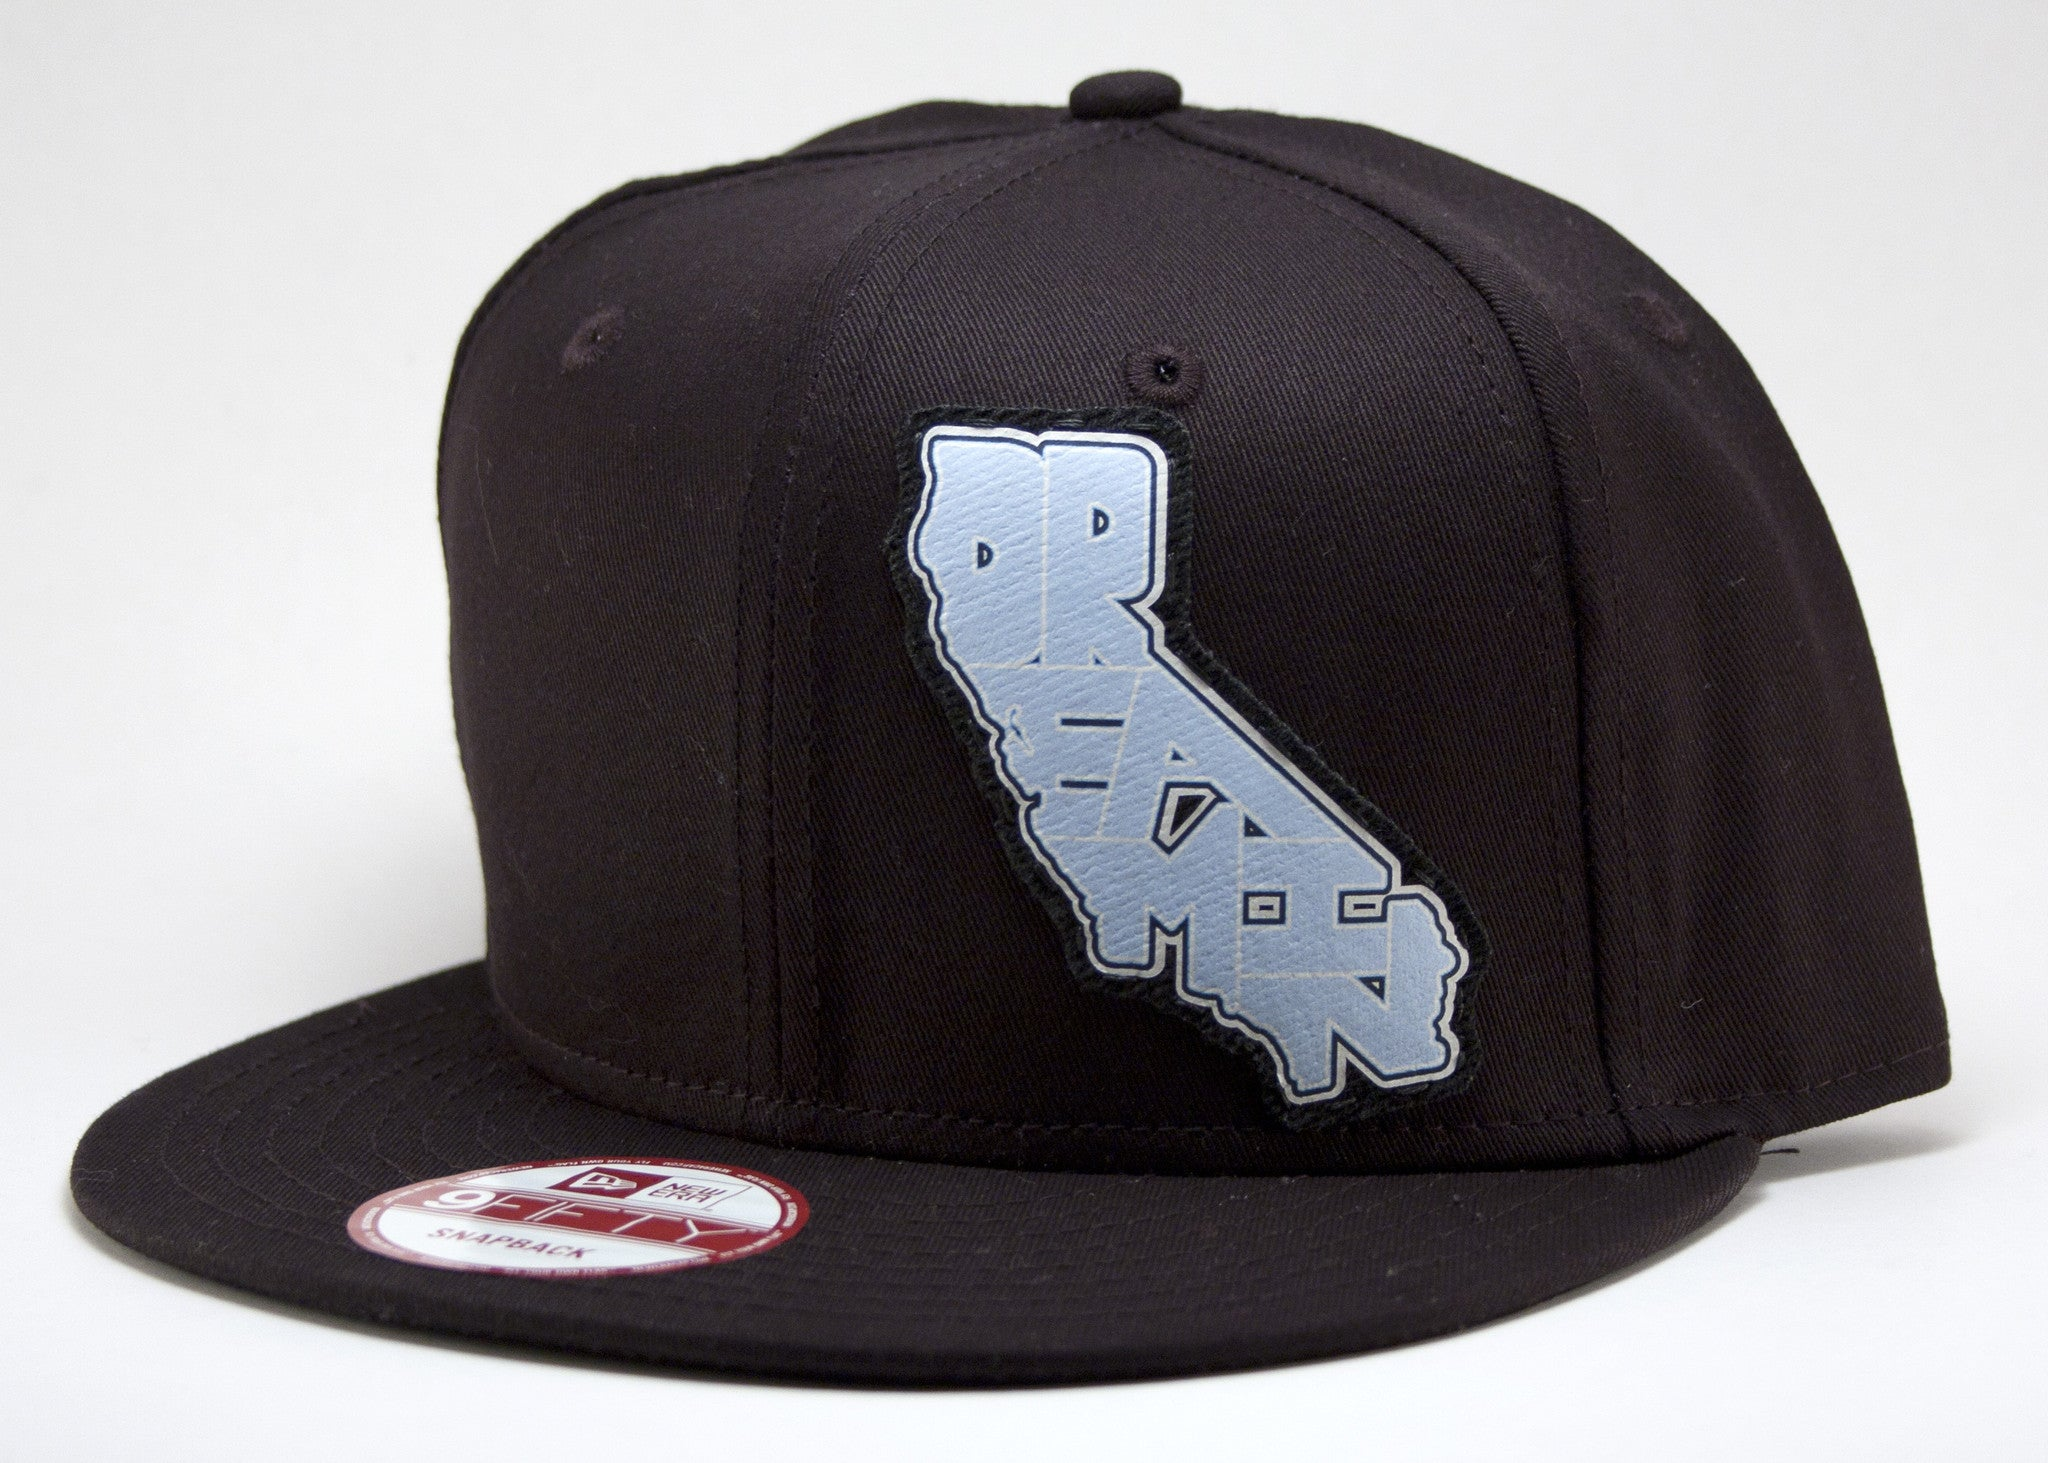 California Dreamin: Clouds - Hats